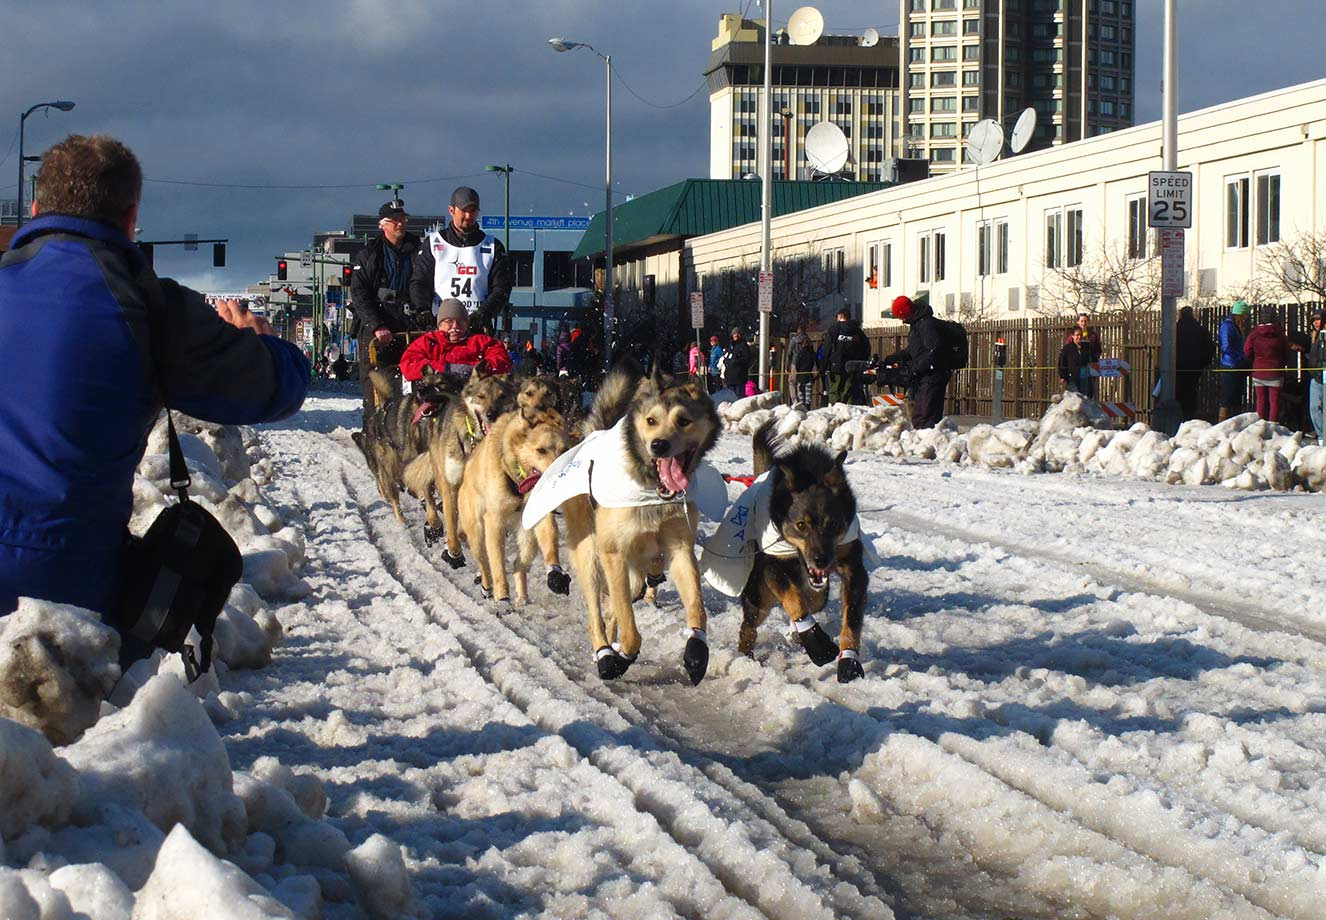 The course of the Iditarod dogsled race in Alaska had to be moved for only the second time in 43 years because of a snow shortage.